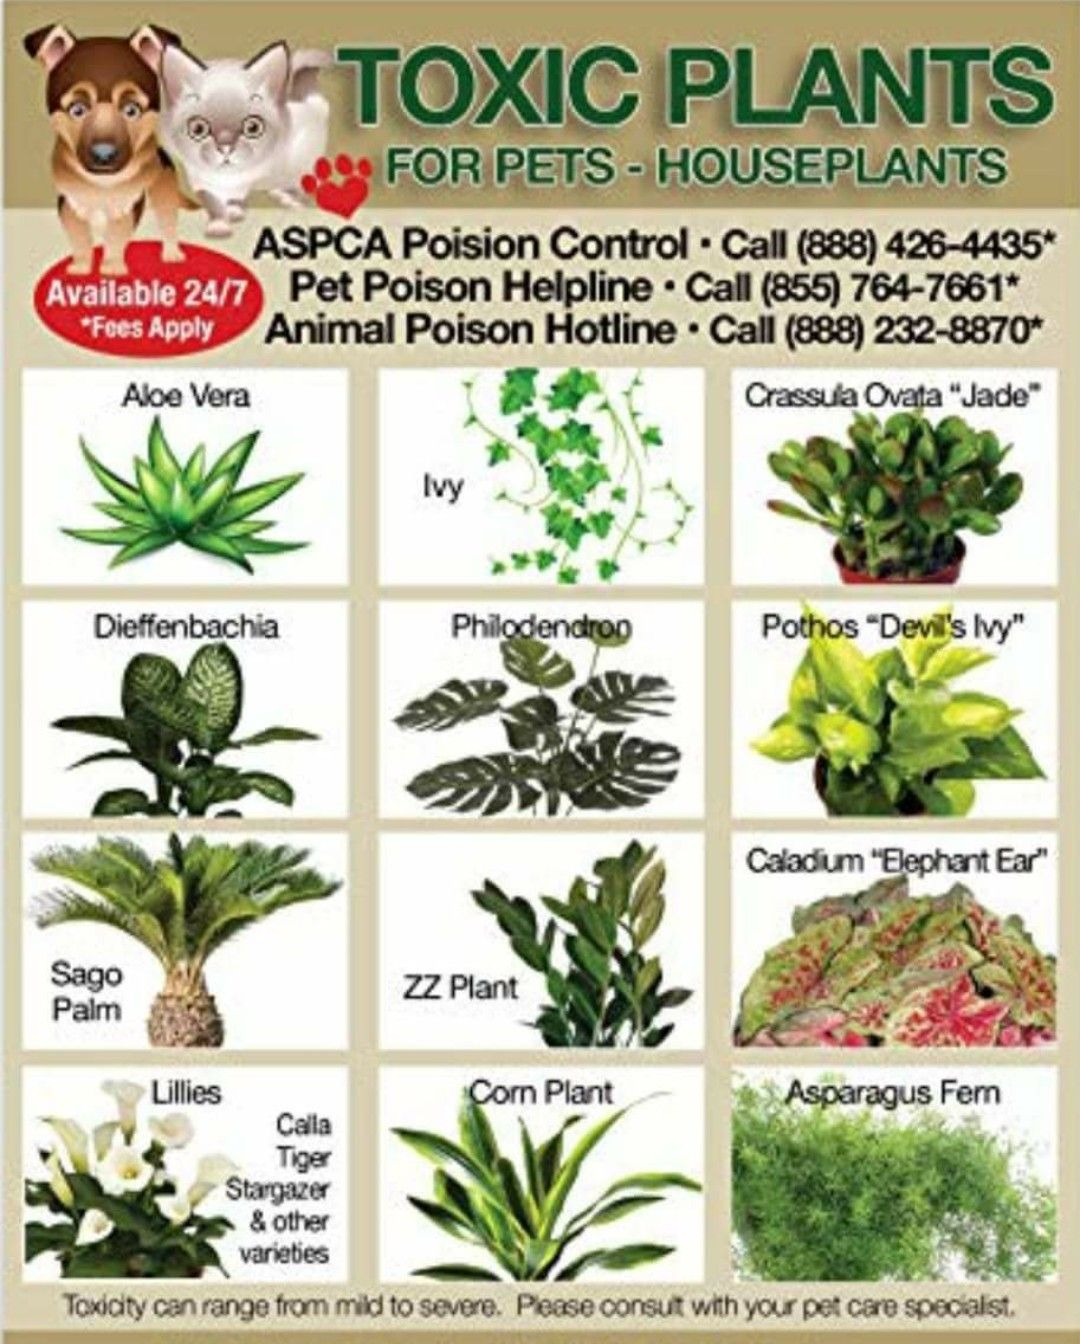 Pin By Toby Black On Healthy Pets Cat Plants Toxic Plants For Cats Plants